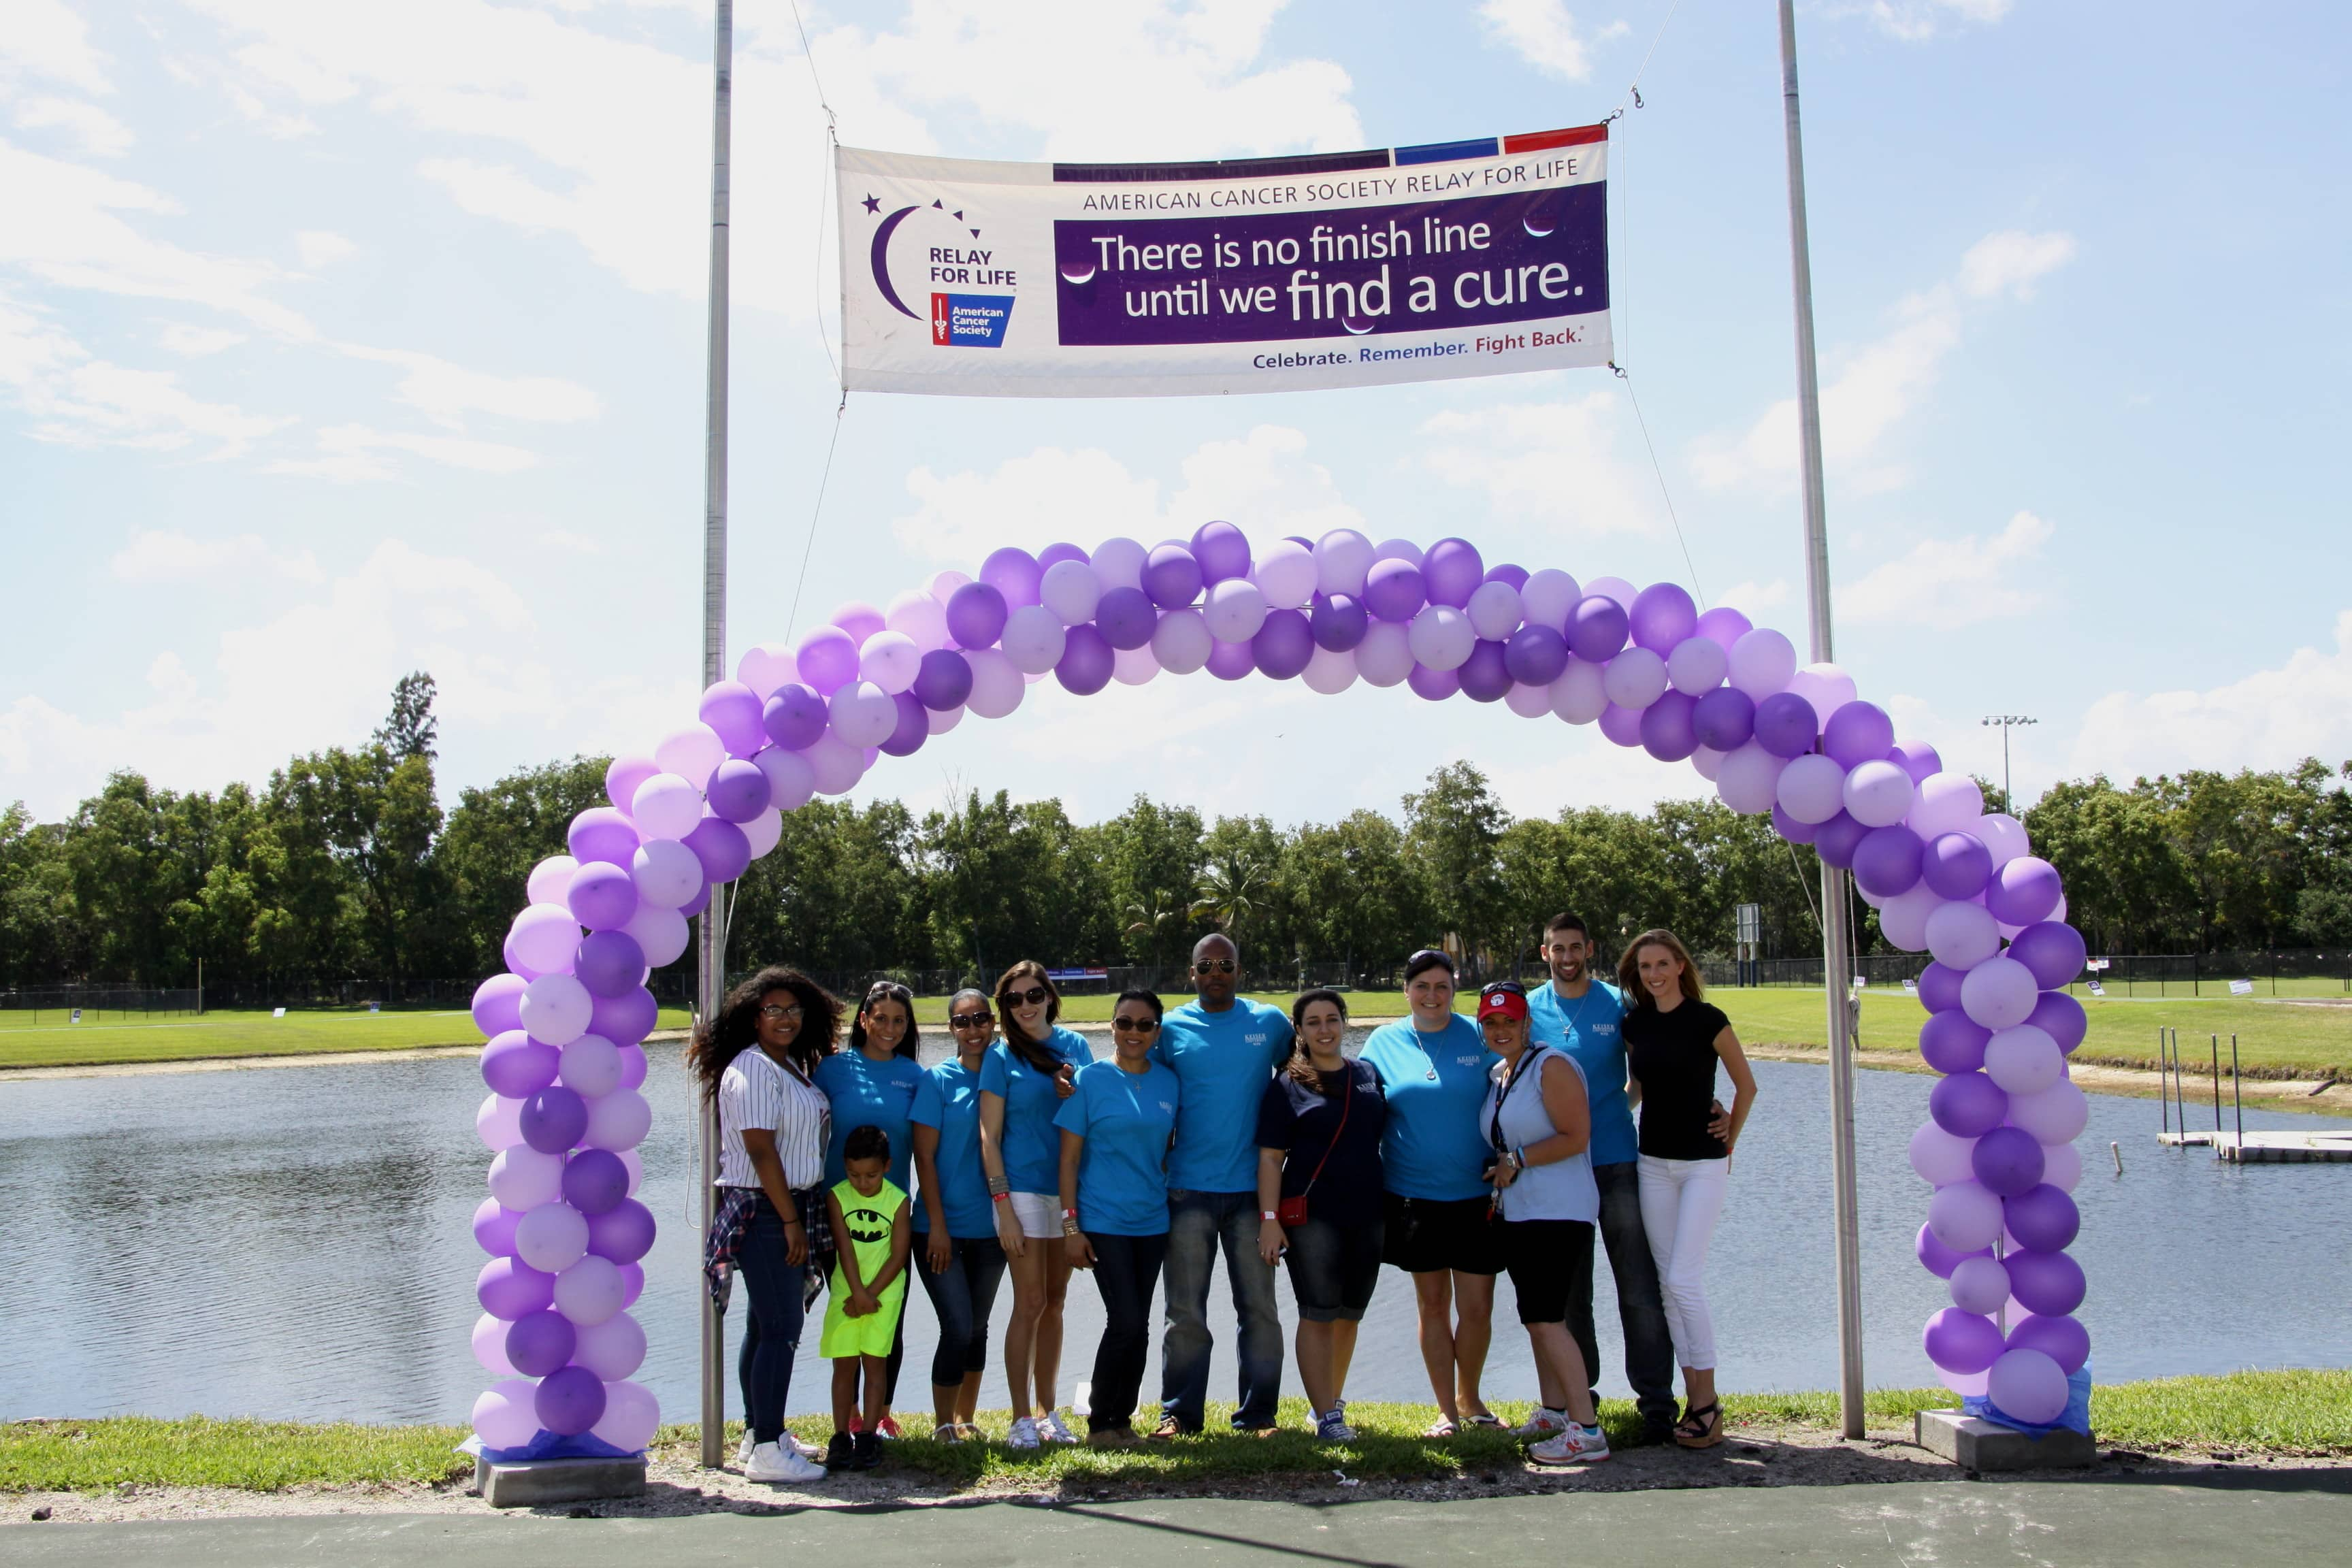 West Palm Beach Raises Money for Relay for Life